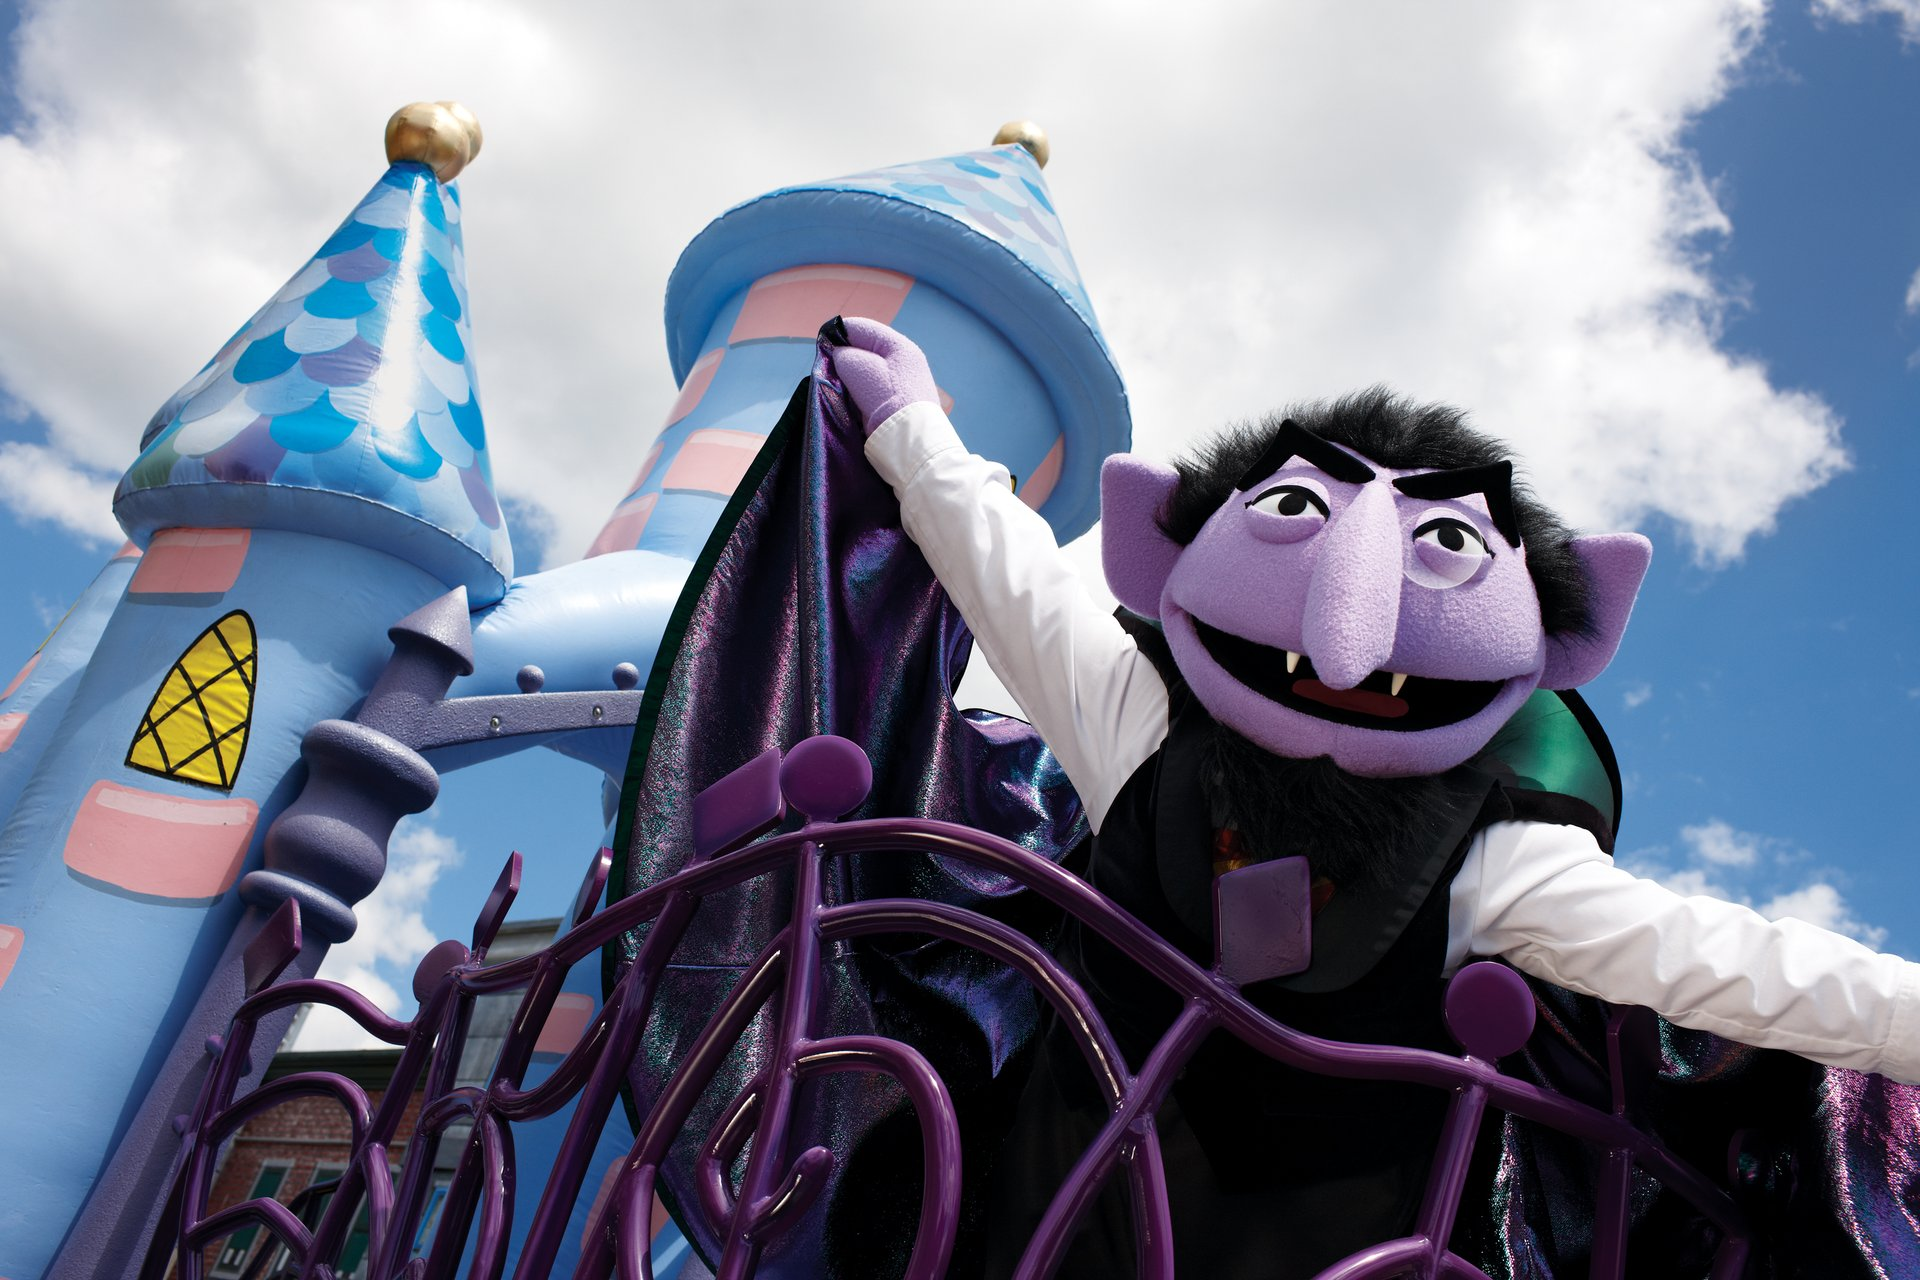 Count in Sesame Halloween parade, SeaWorld 2020